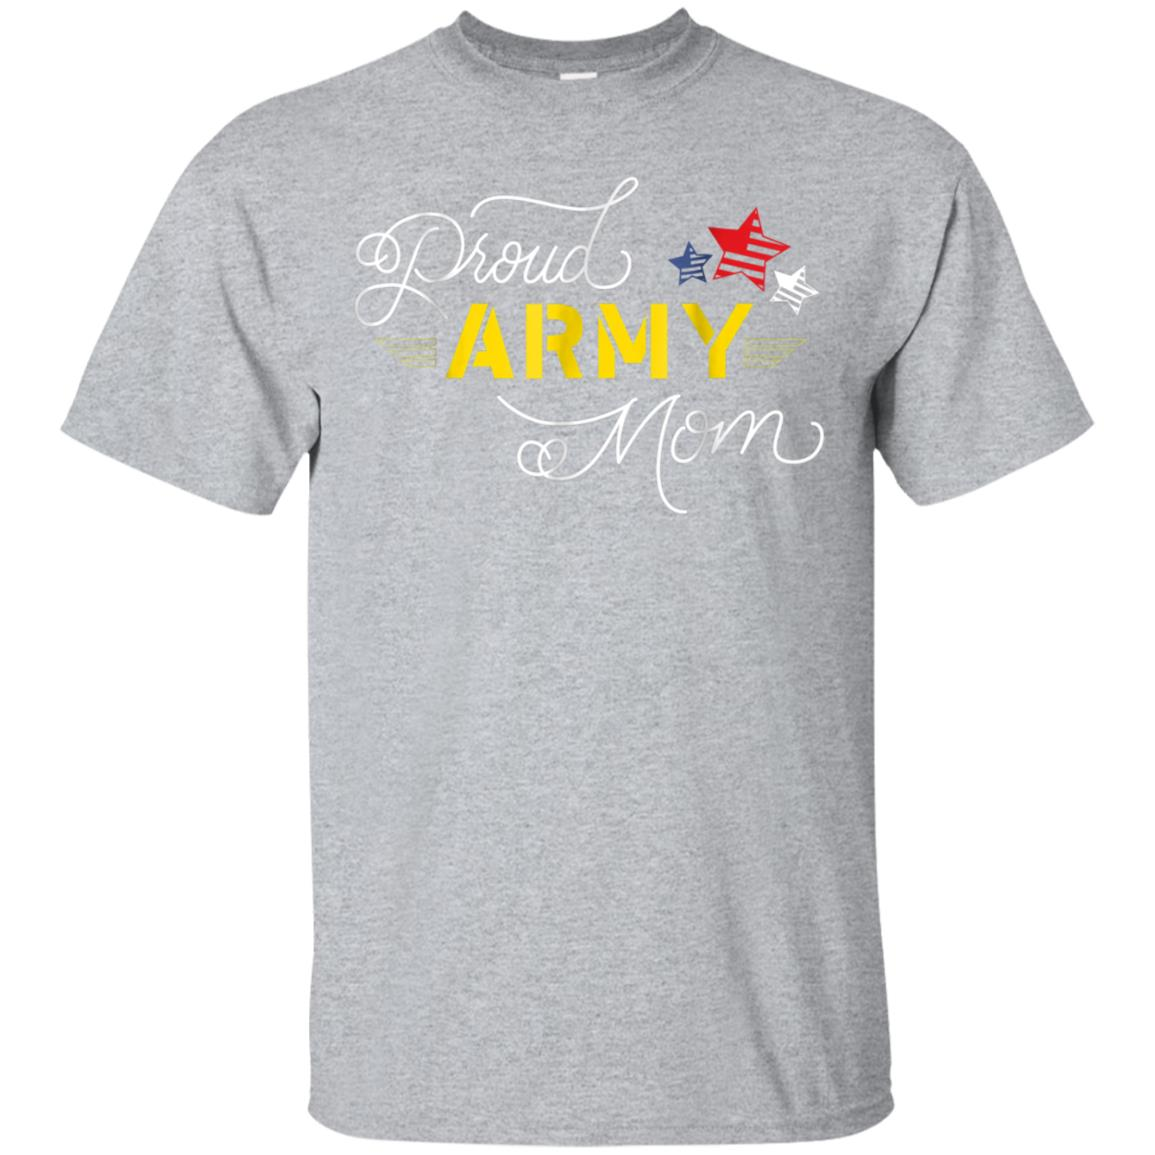 Proud US army mom Tshirt for women  Military family 99promocode